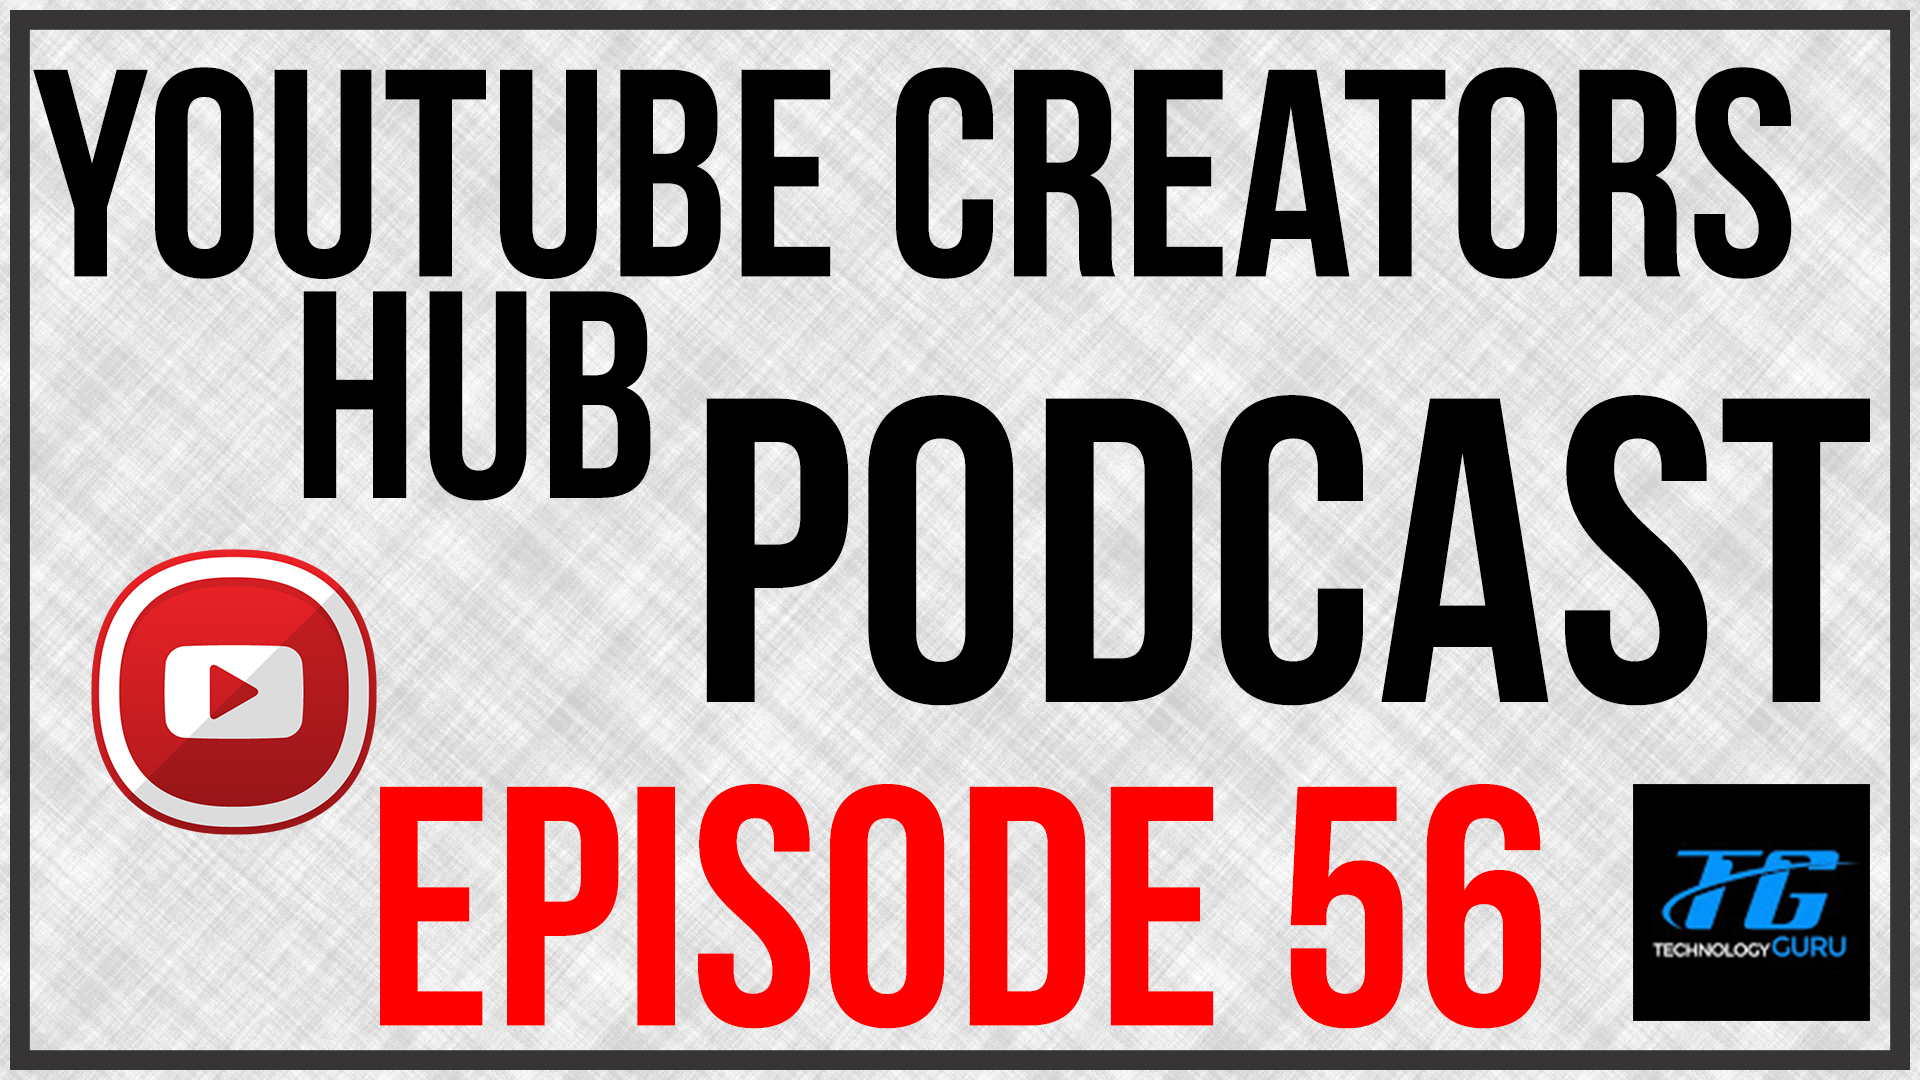 YouTube Creators Hub Podcast Episode 56